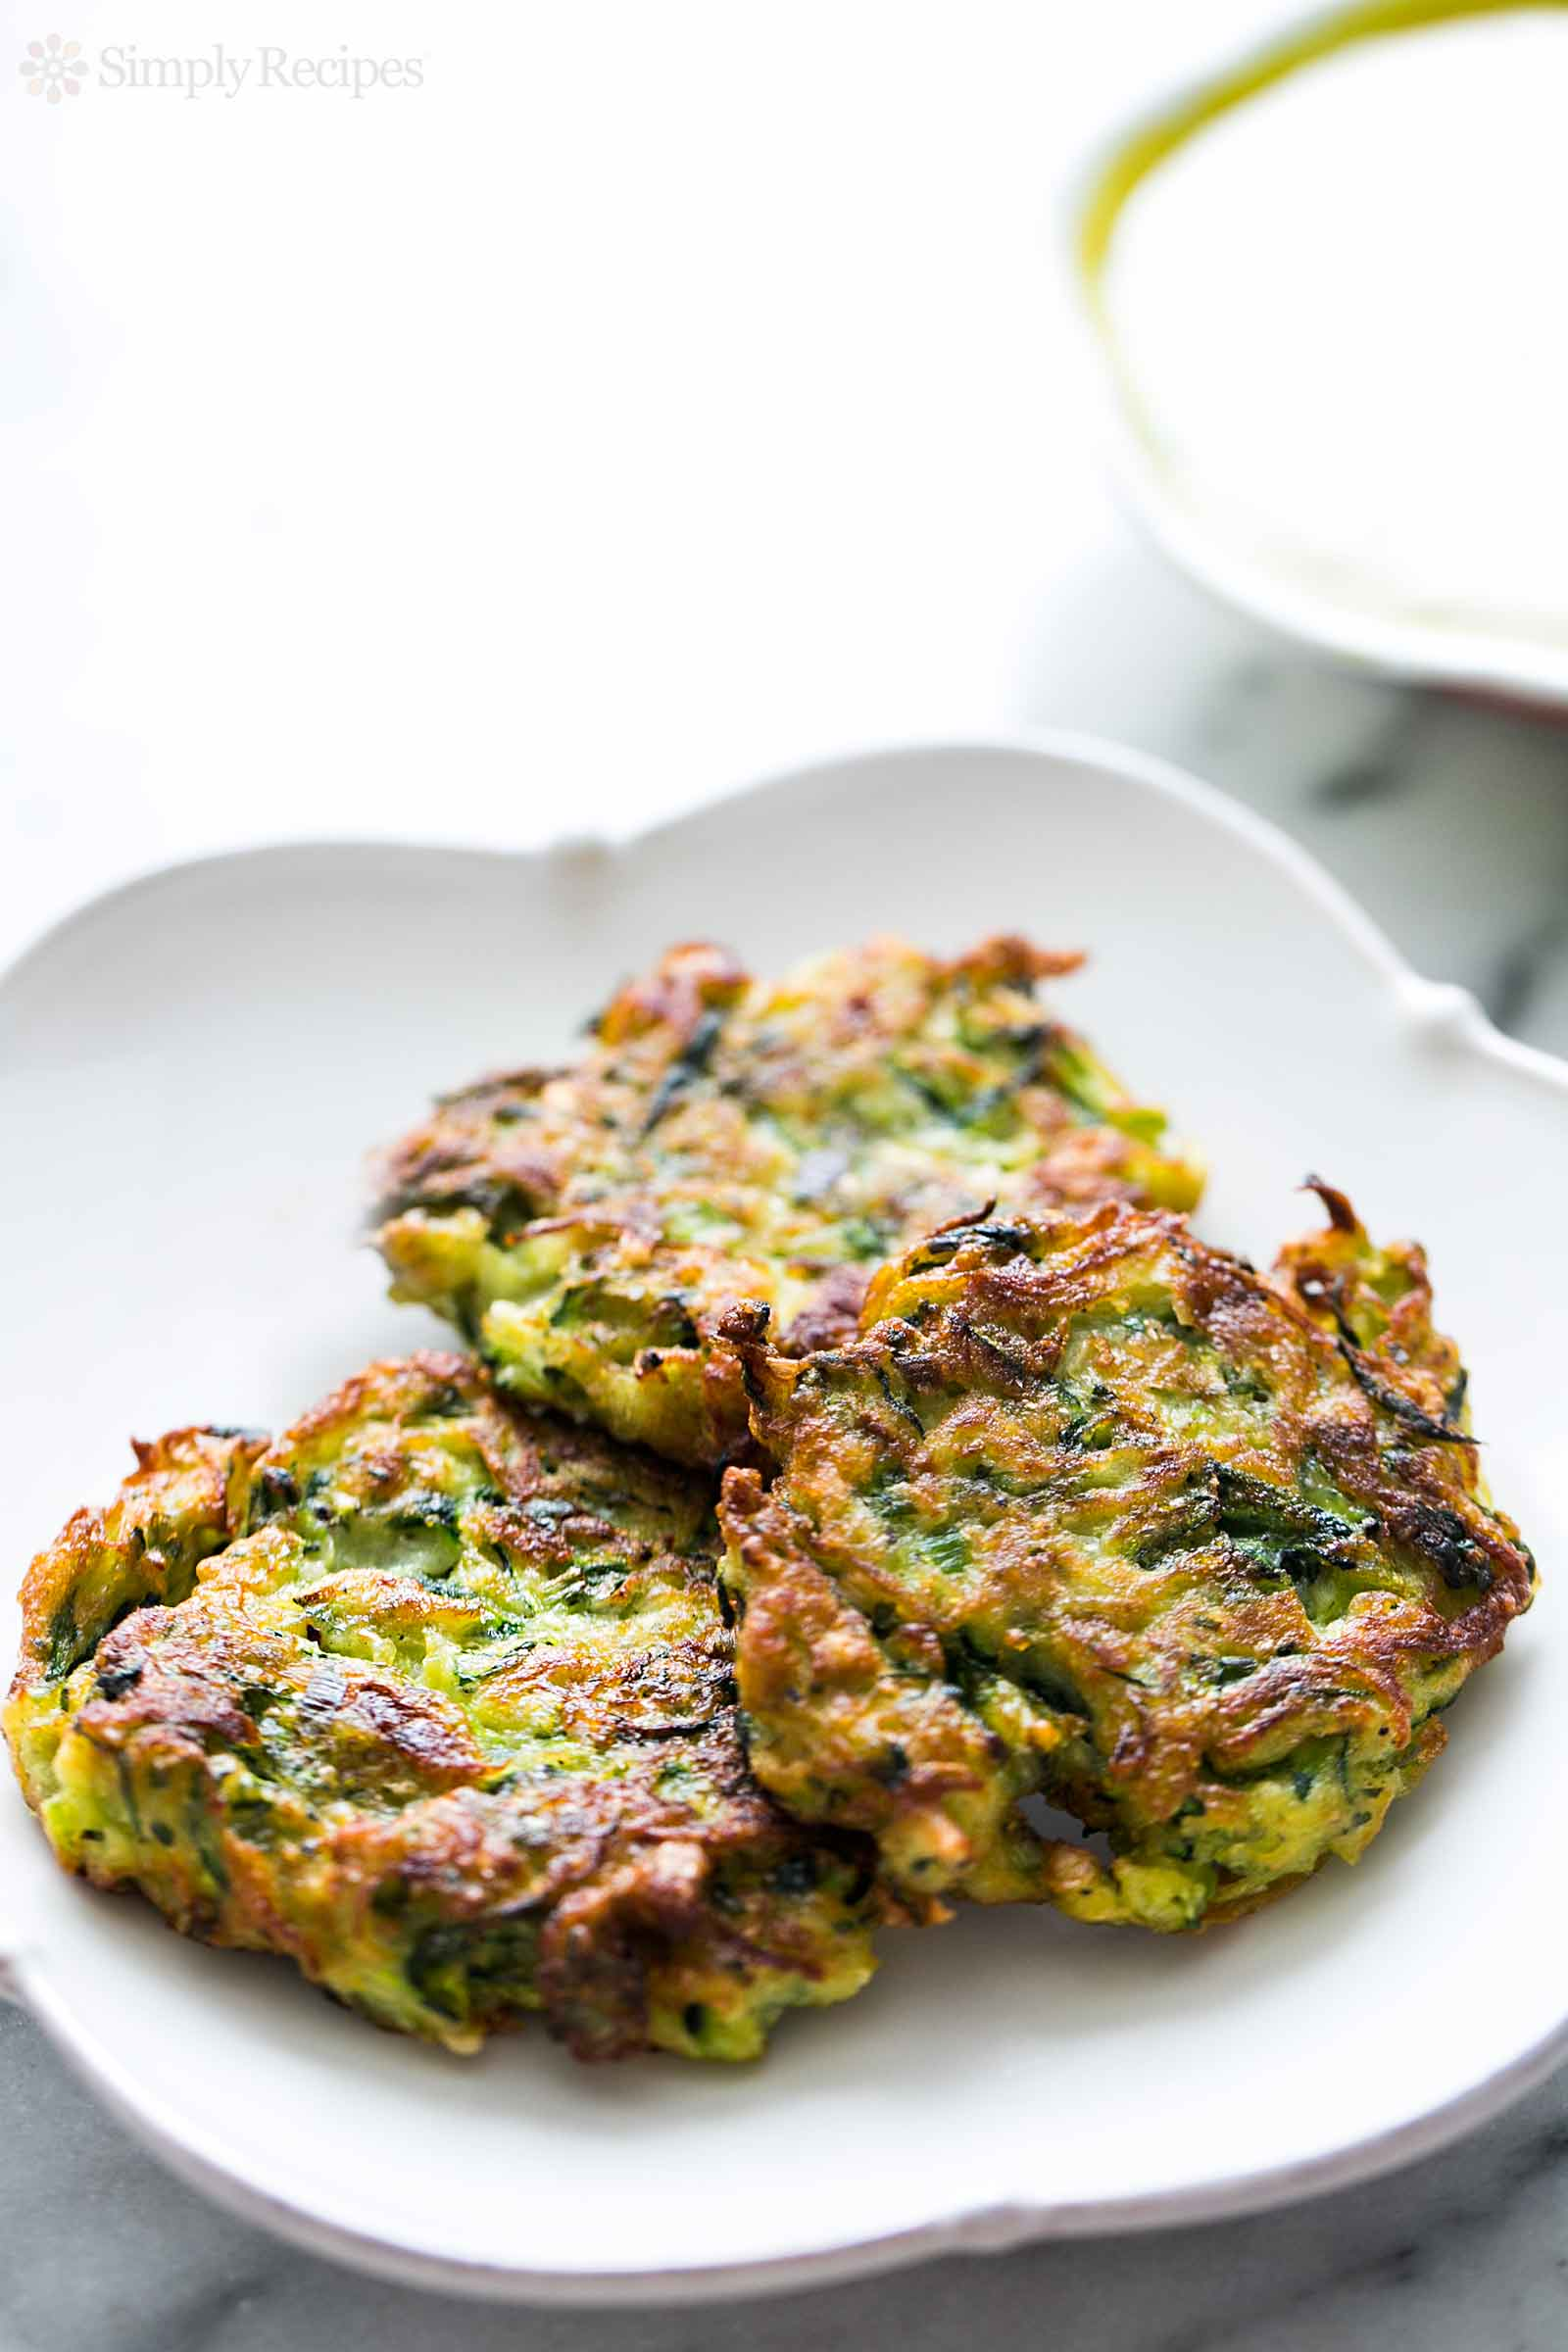 Zucchini Fritters from Simply Recipes